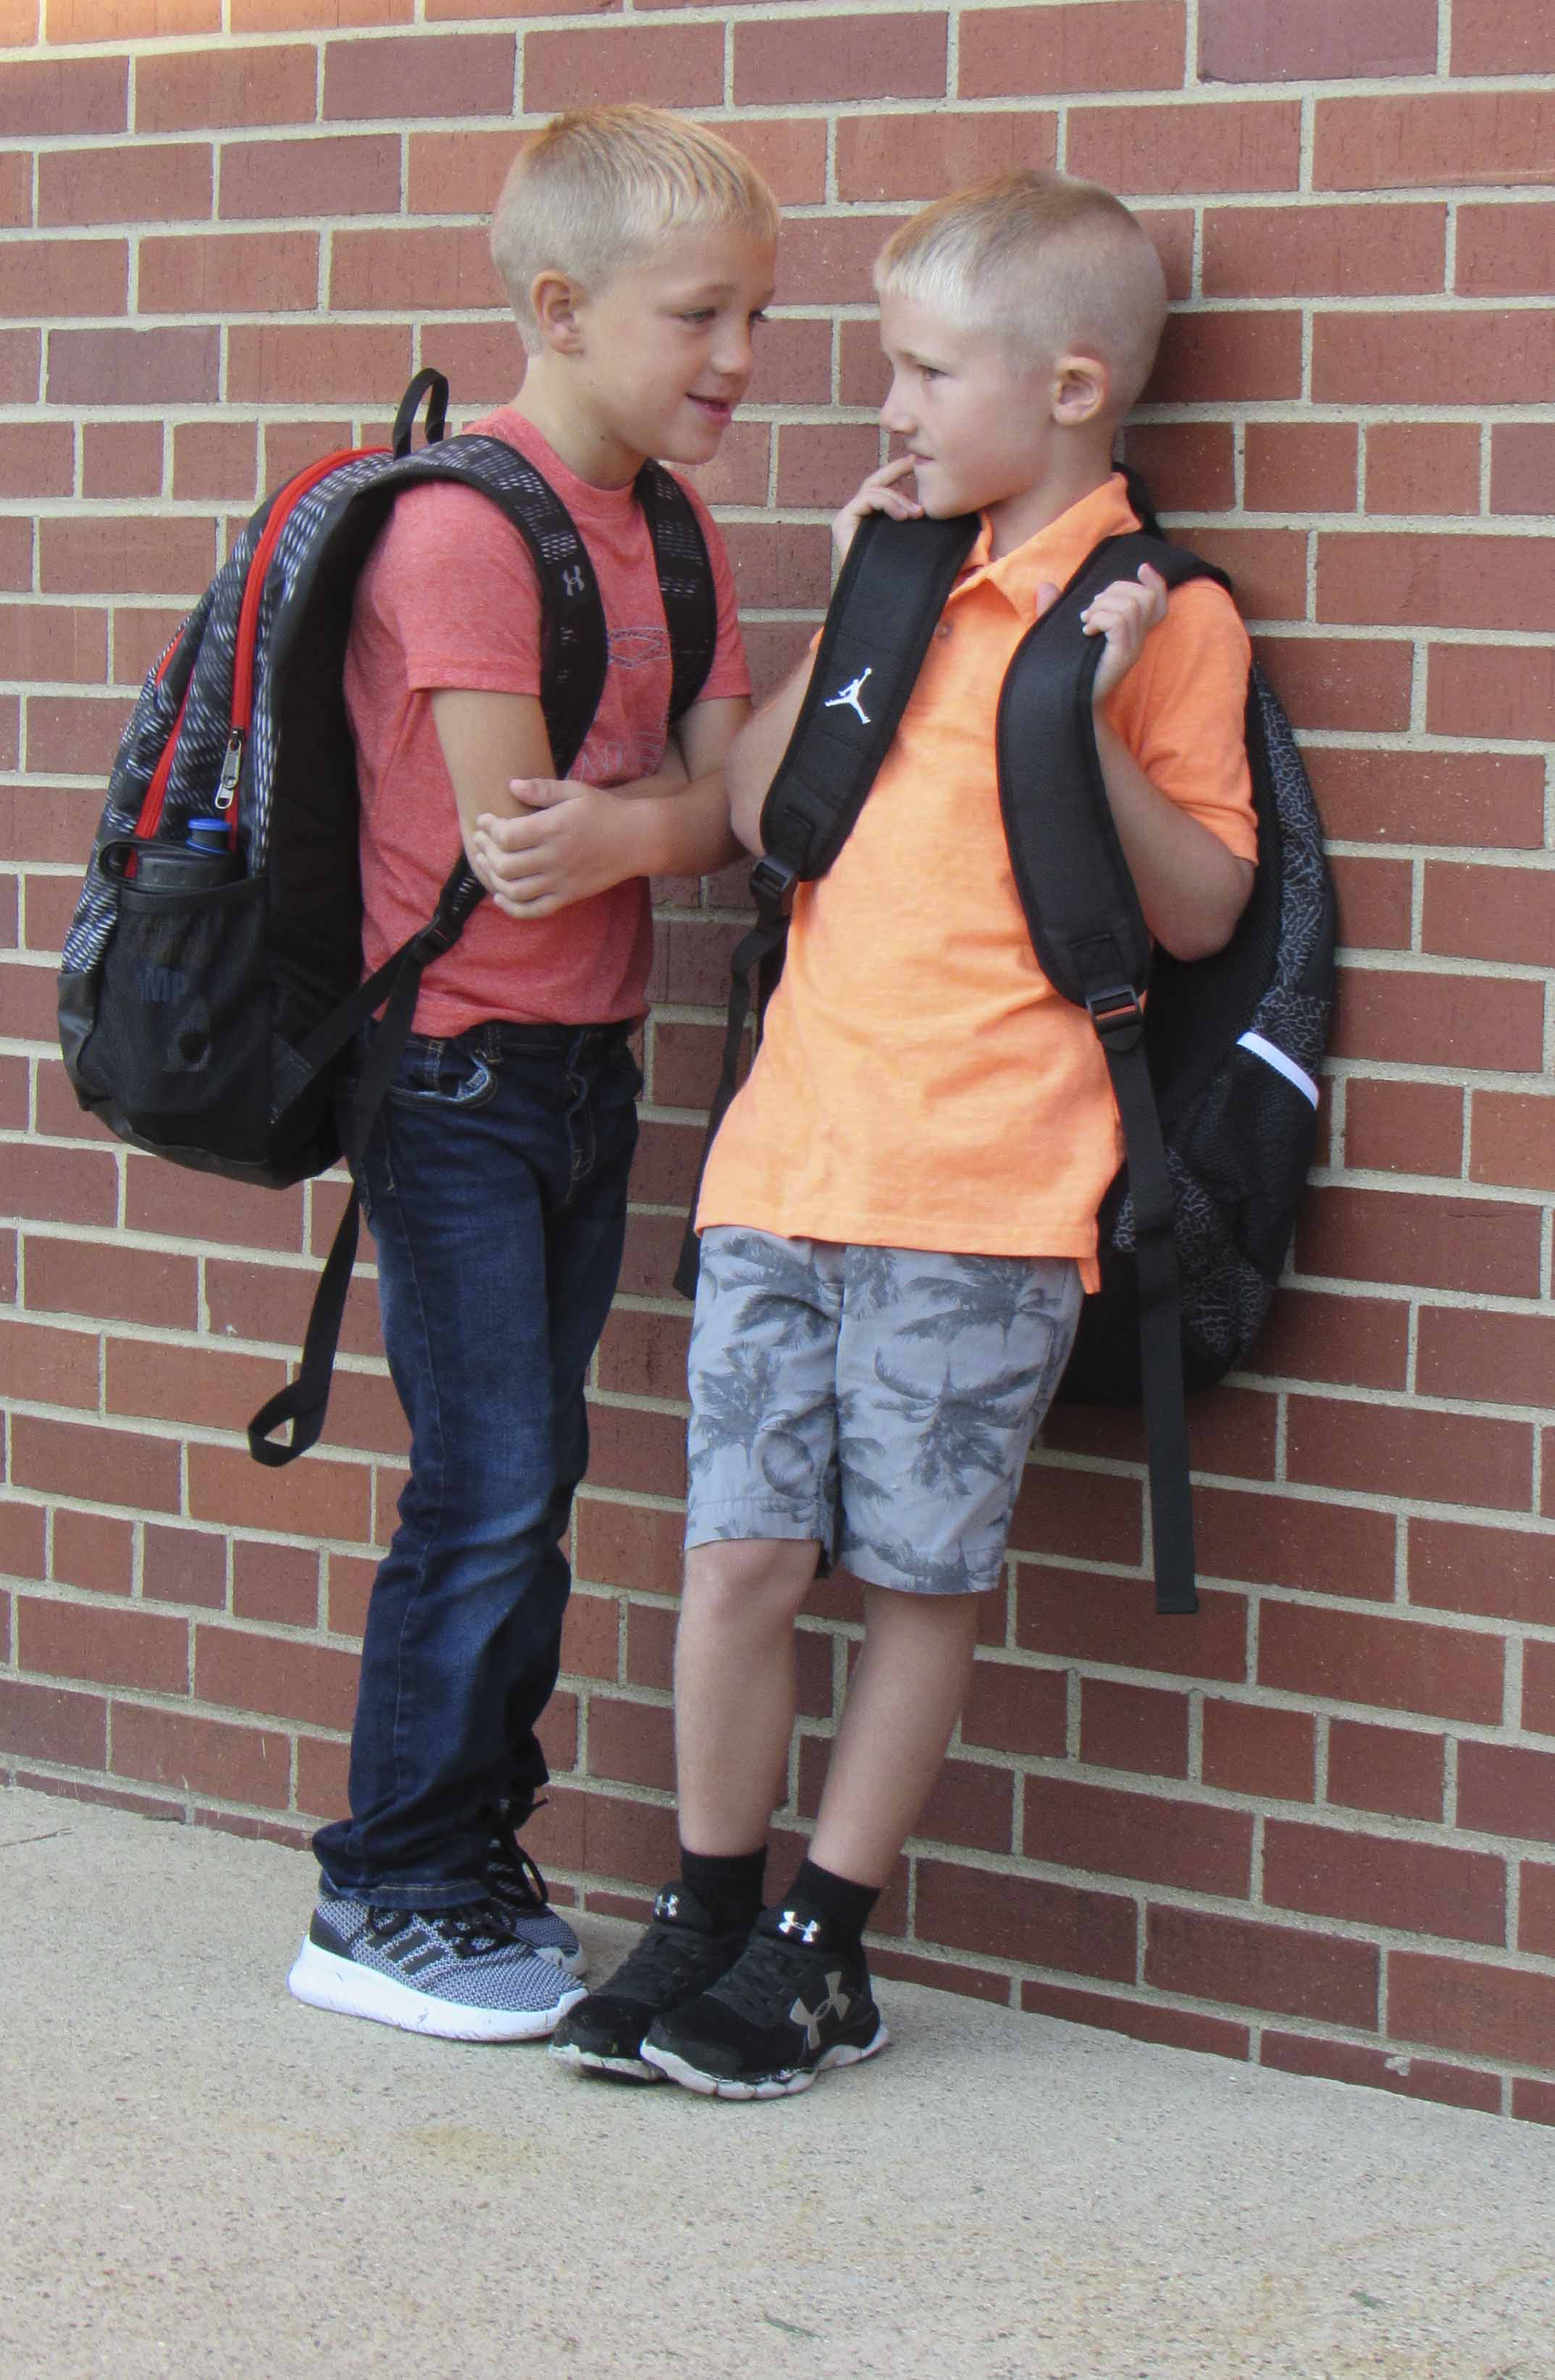 First-grader Nick Schlarmann talks with kindergartener Adler Jacobs as they wait for the bell to ring on the first day of school at Sacred Heart. (Photo by Kim Brooks)